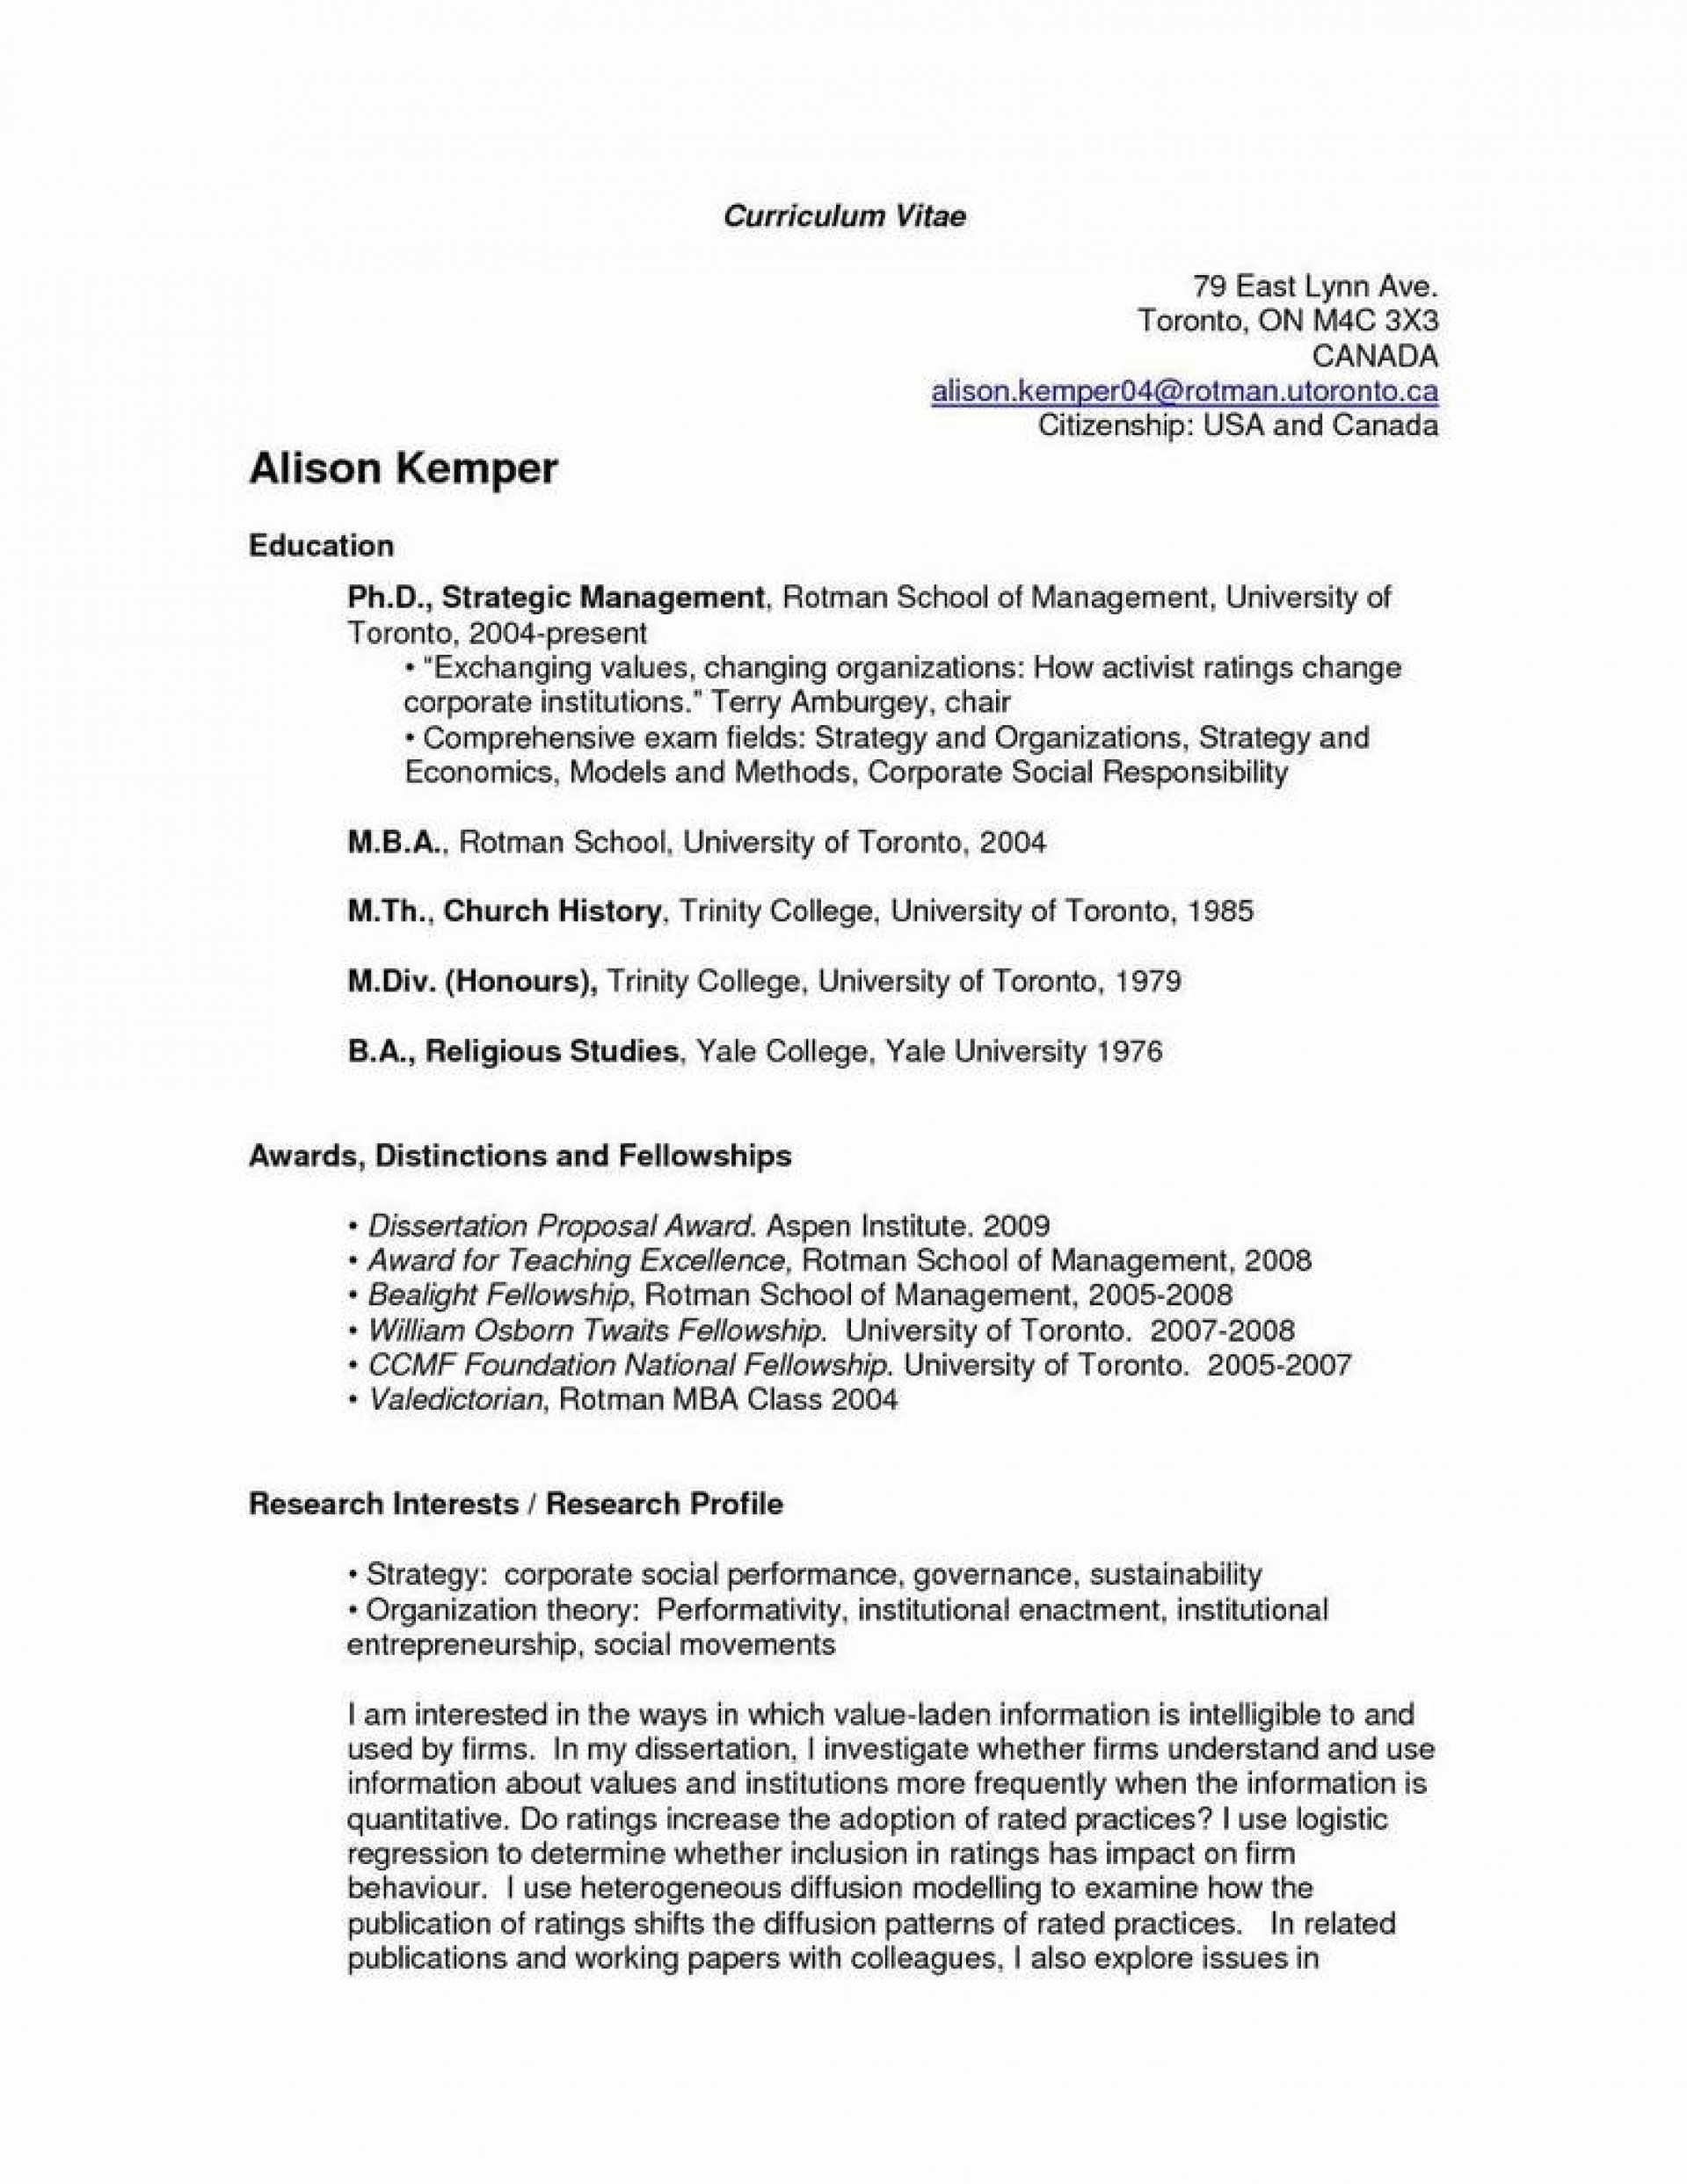 001 The New American Dreamers Ruth Sidel Essay Free Resume Template Singapore Download Awesome Gallery Of Format Germany German Amazing 1920